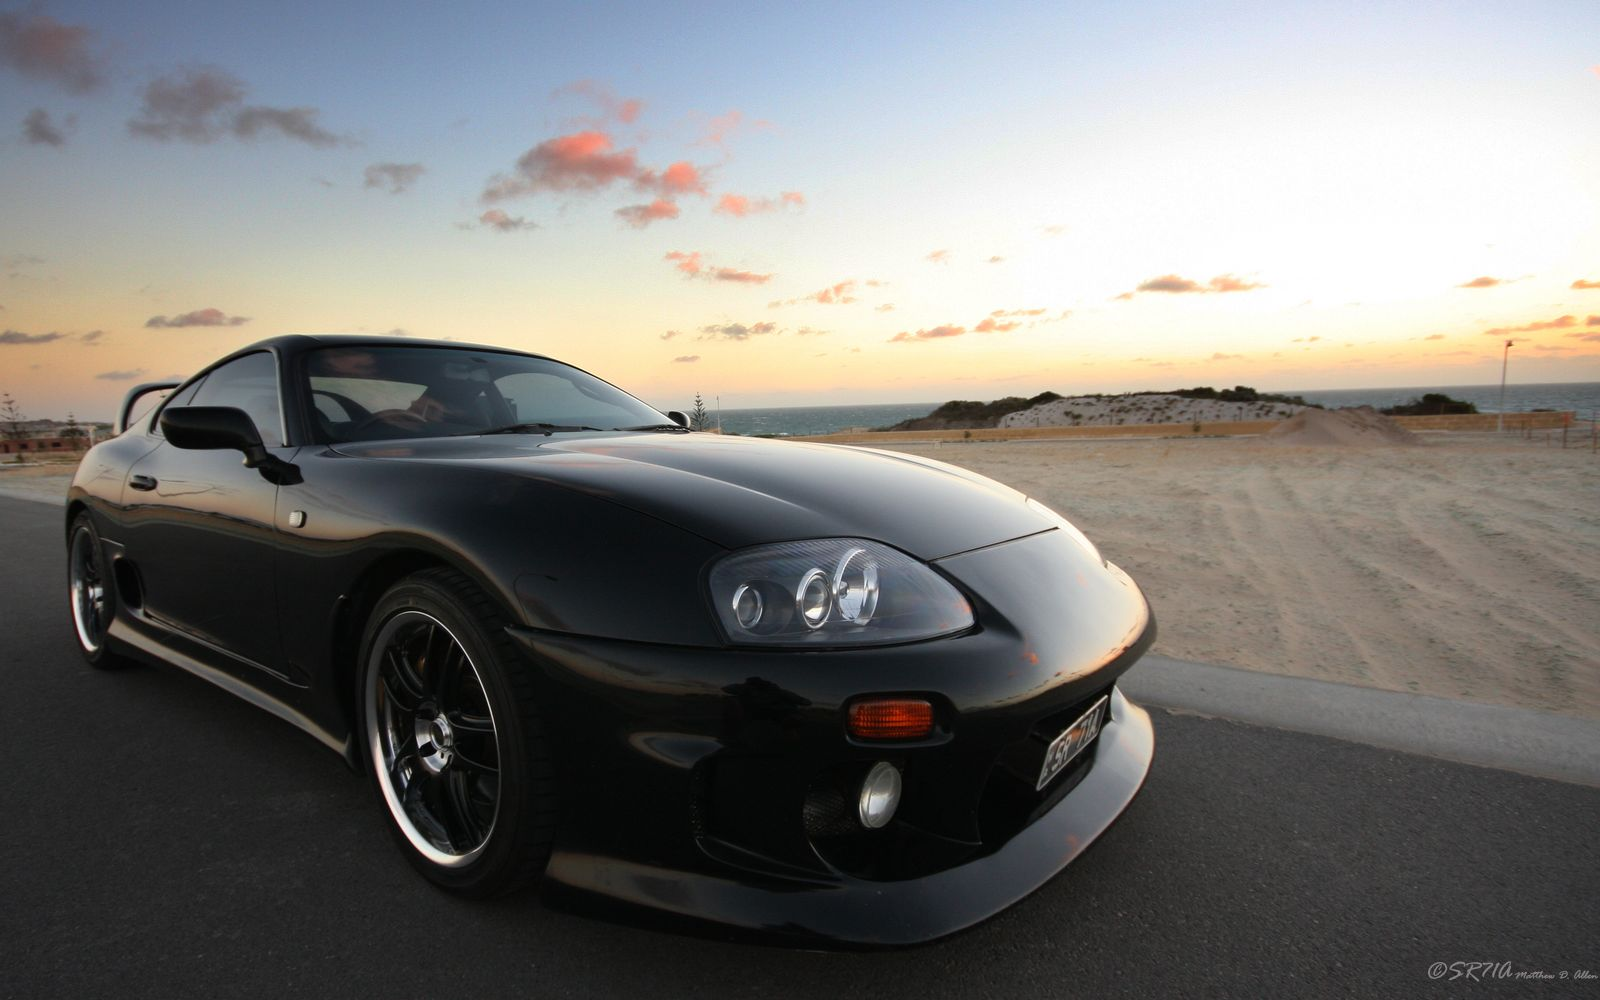 toyota supra wallpapers 4084 hd wallpapersjpg 1600x1000